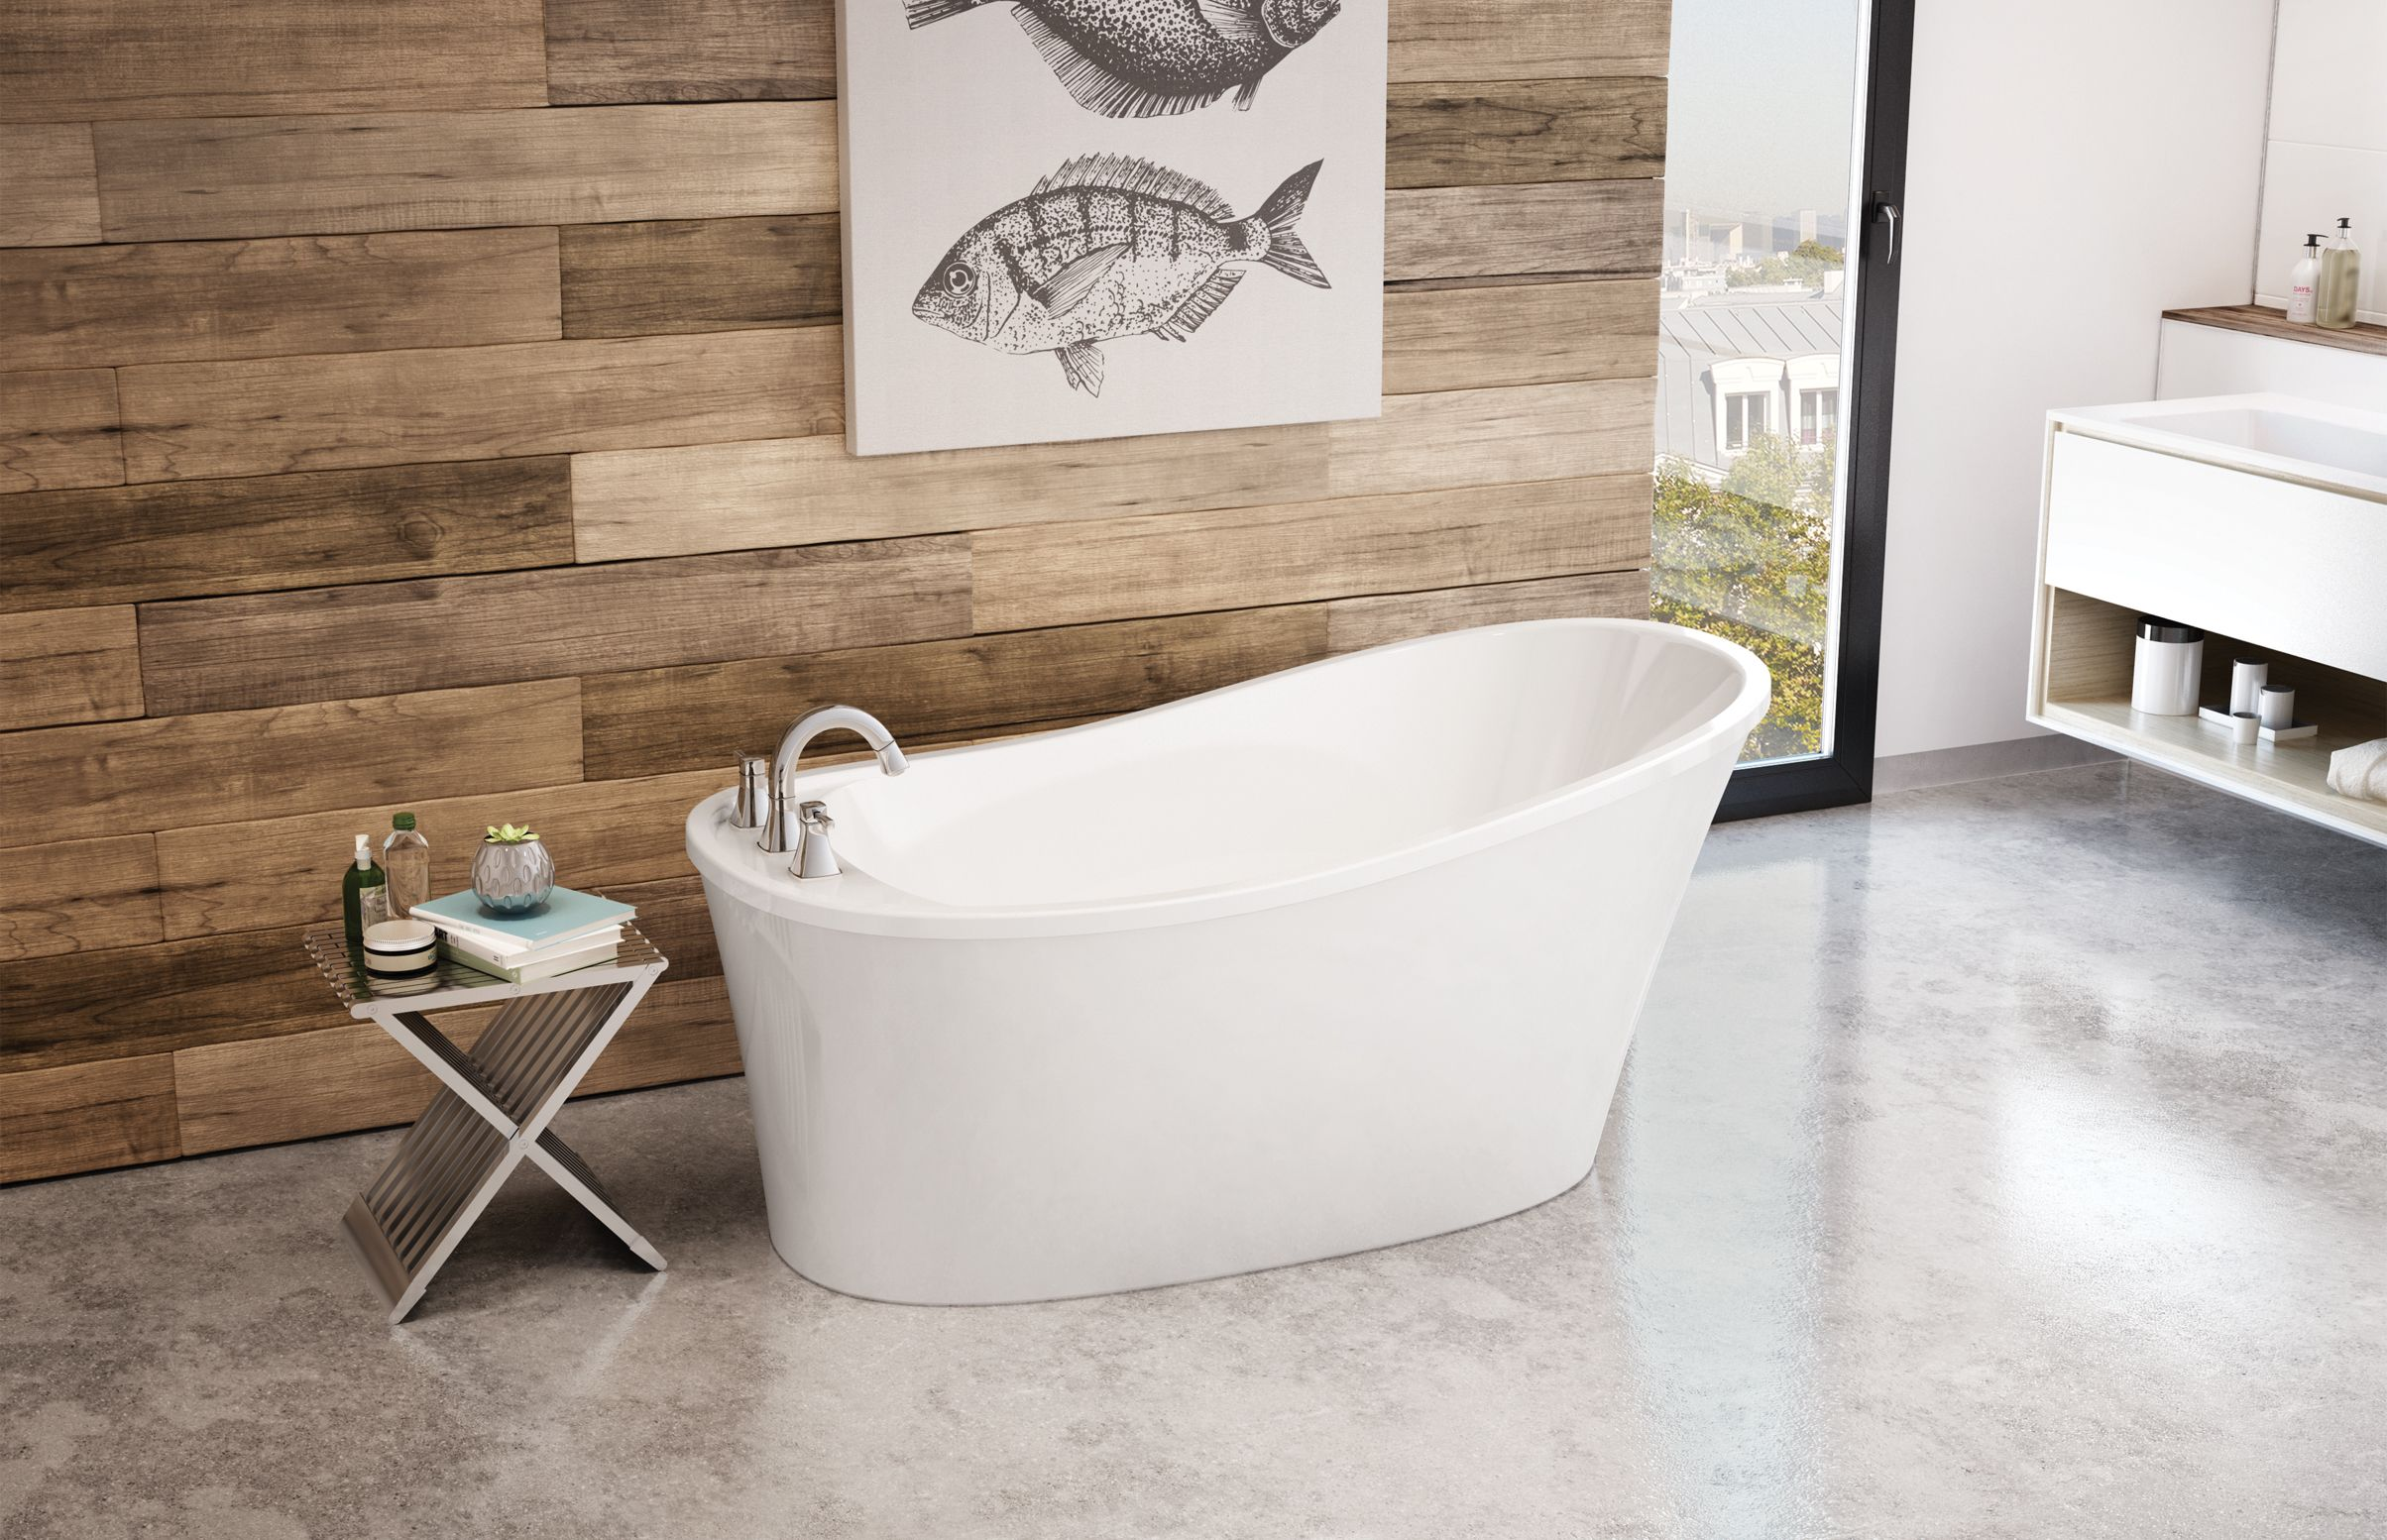 Ariosa 6032 Bathroom Remodel Bathtub Soaker Tub Free